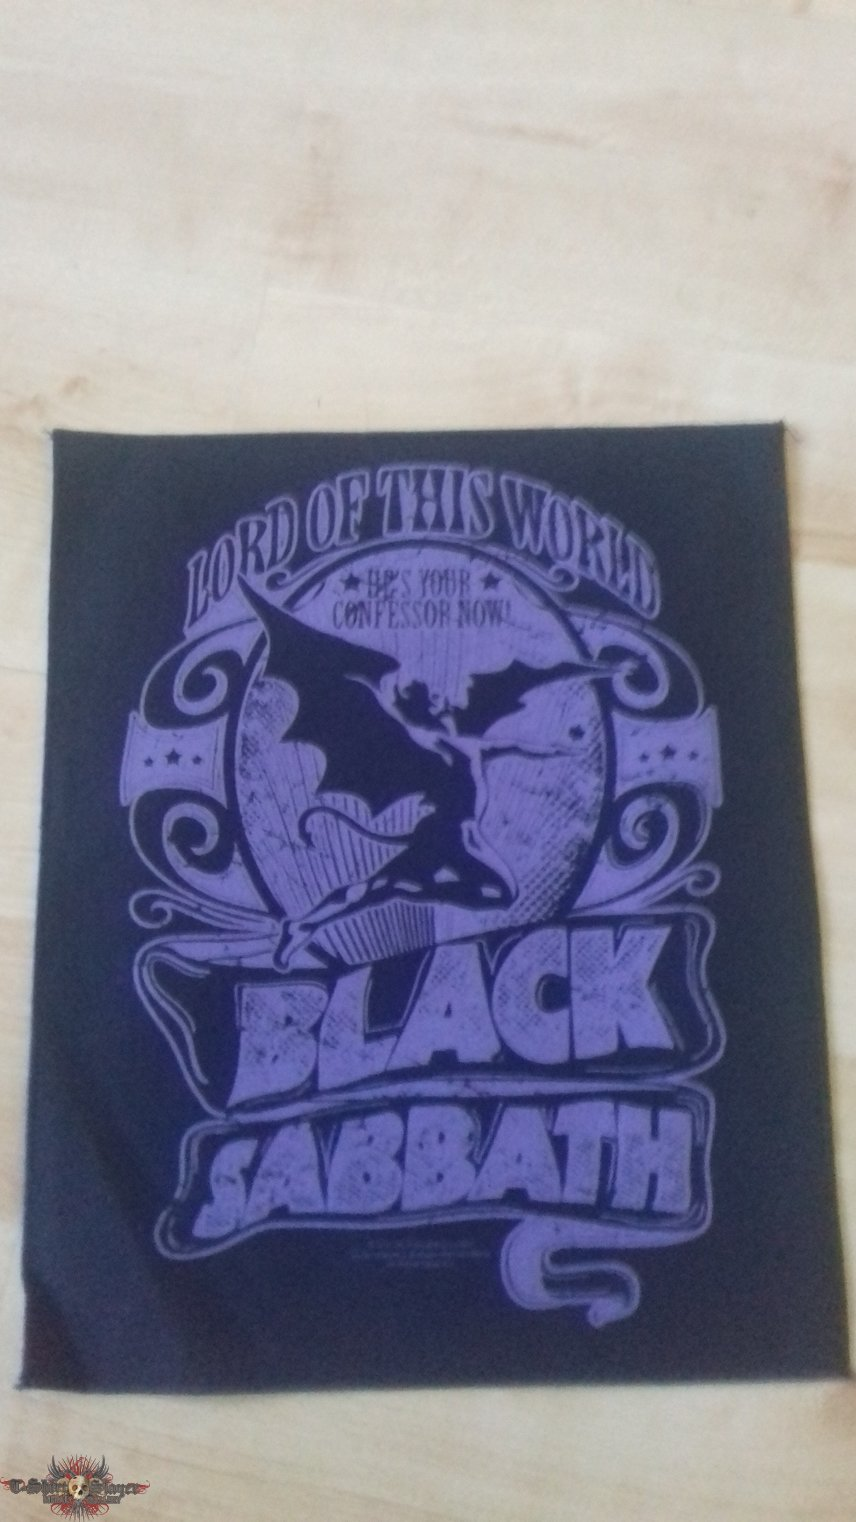 Black Sabbath - Lord of this world (Backpatch)